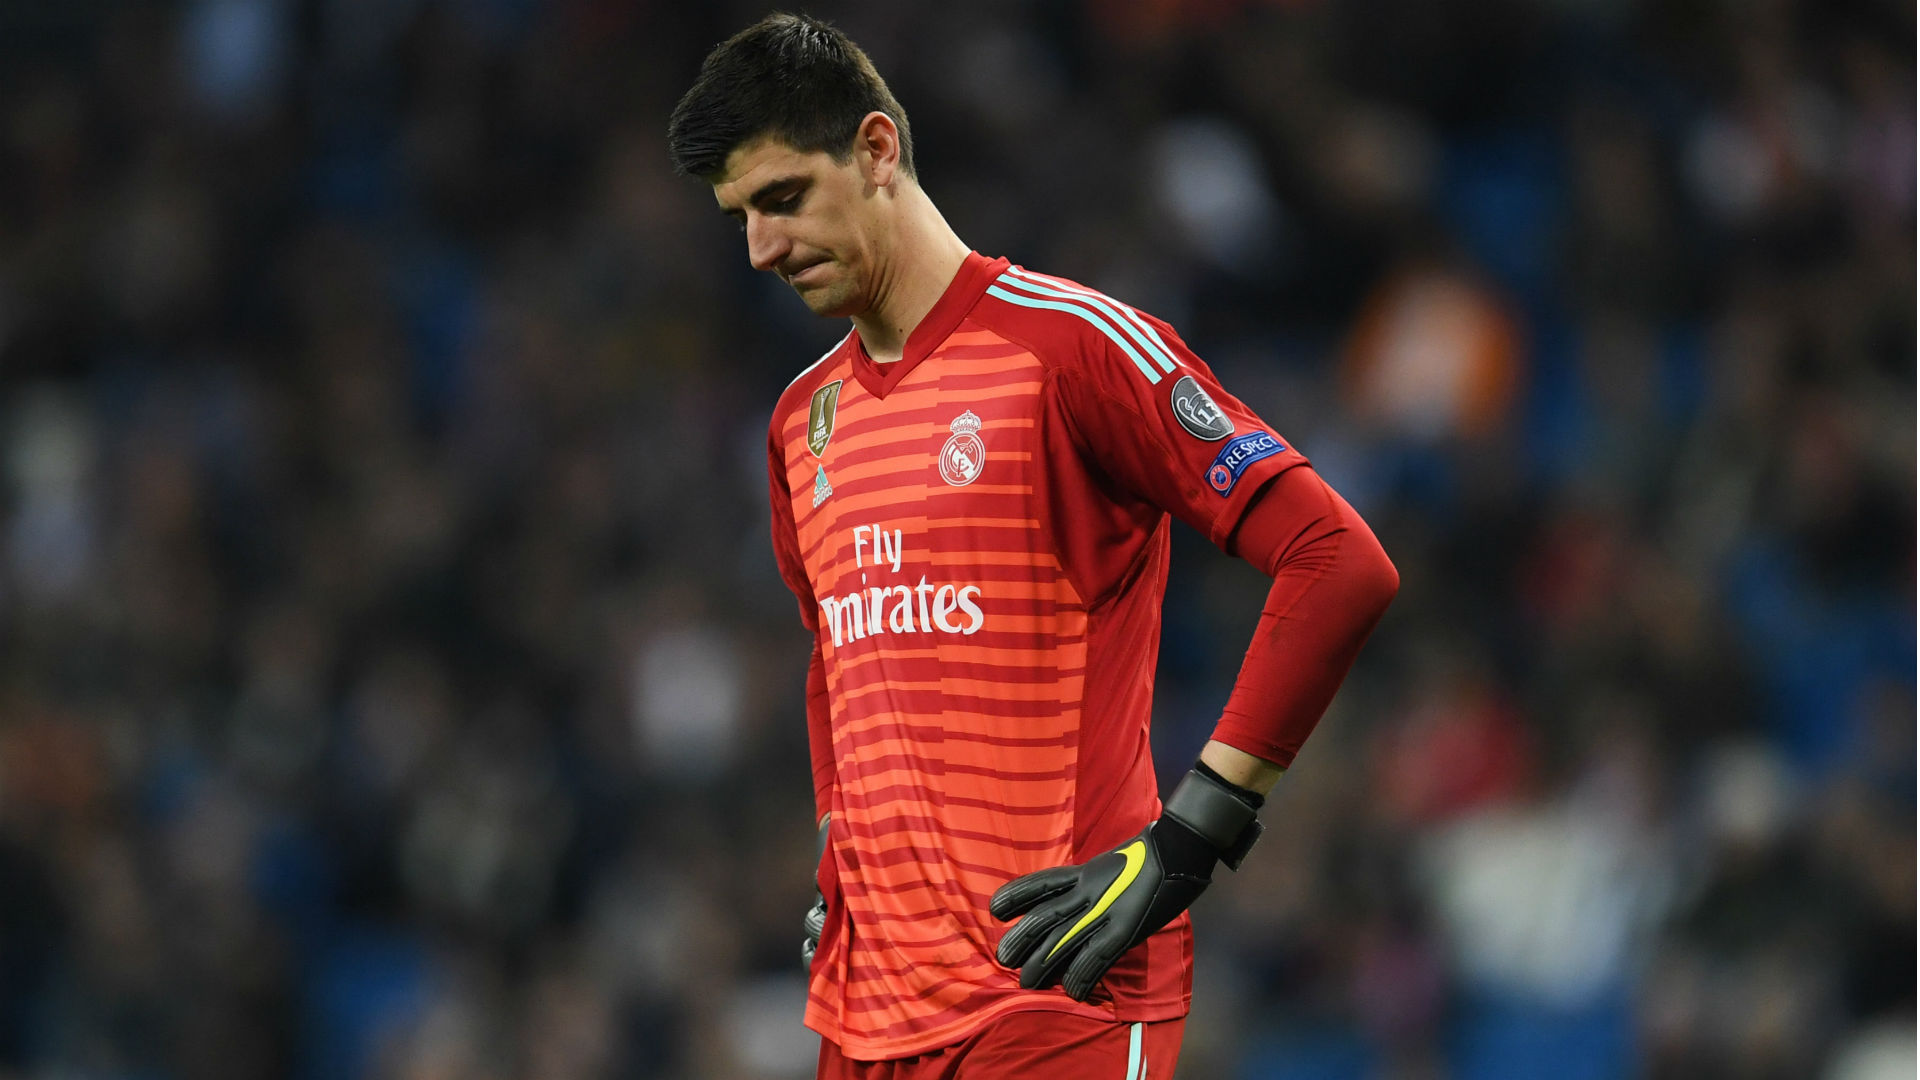 Sometimes things I want don't happen – Zidane cagey over futures of Navas, Courtois